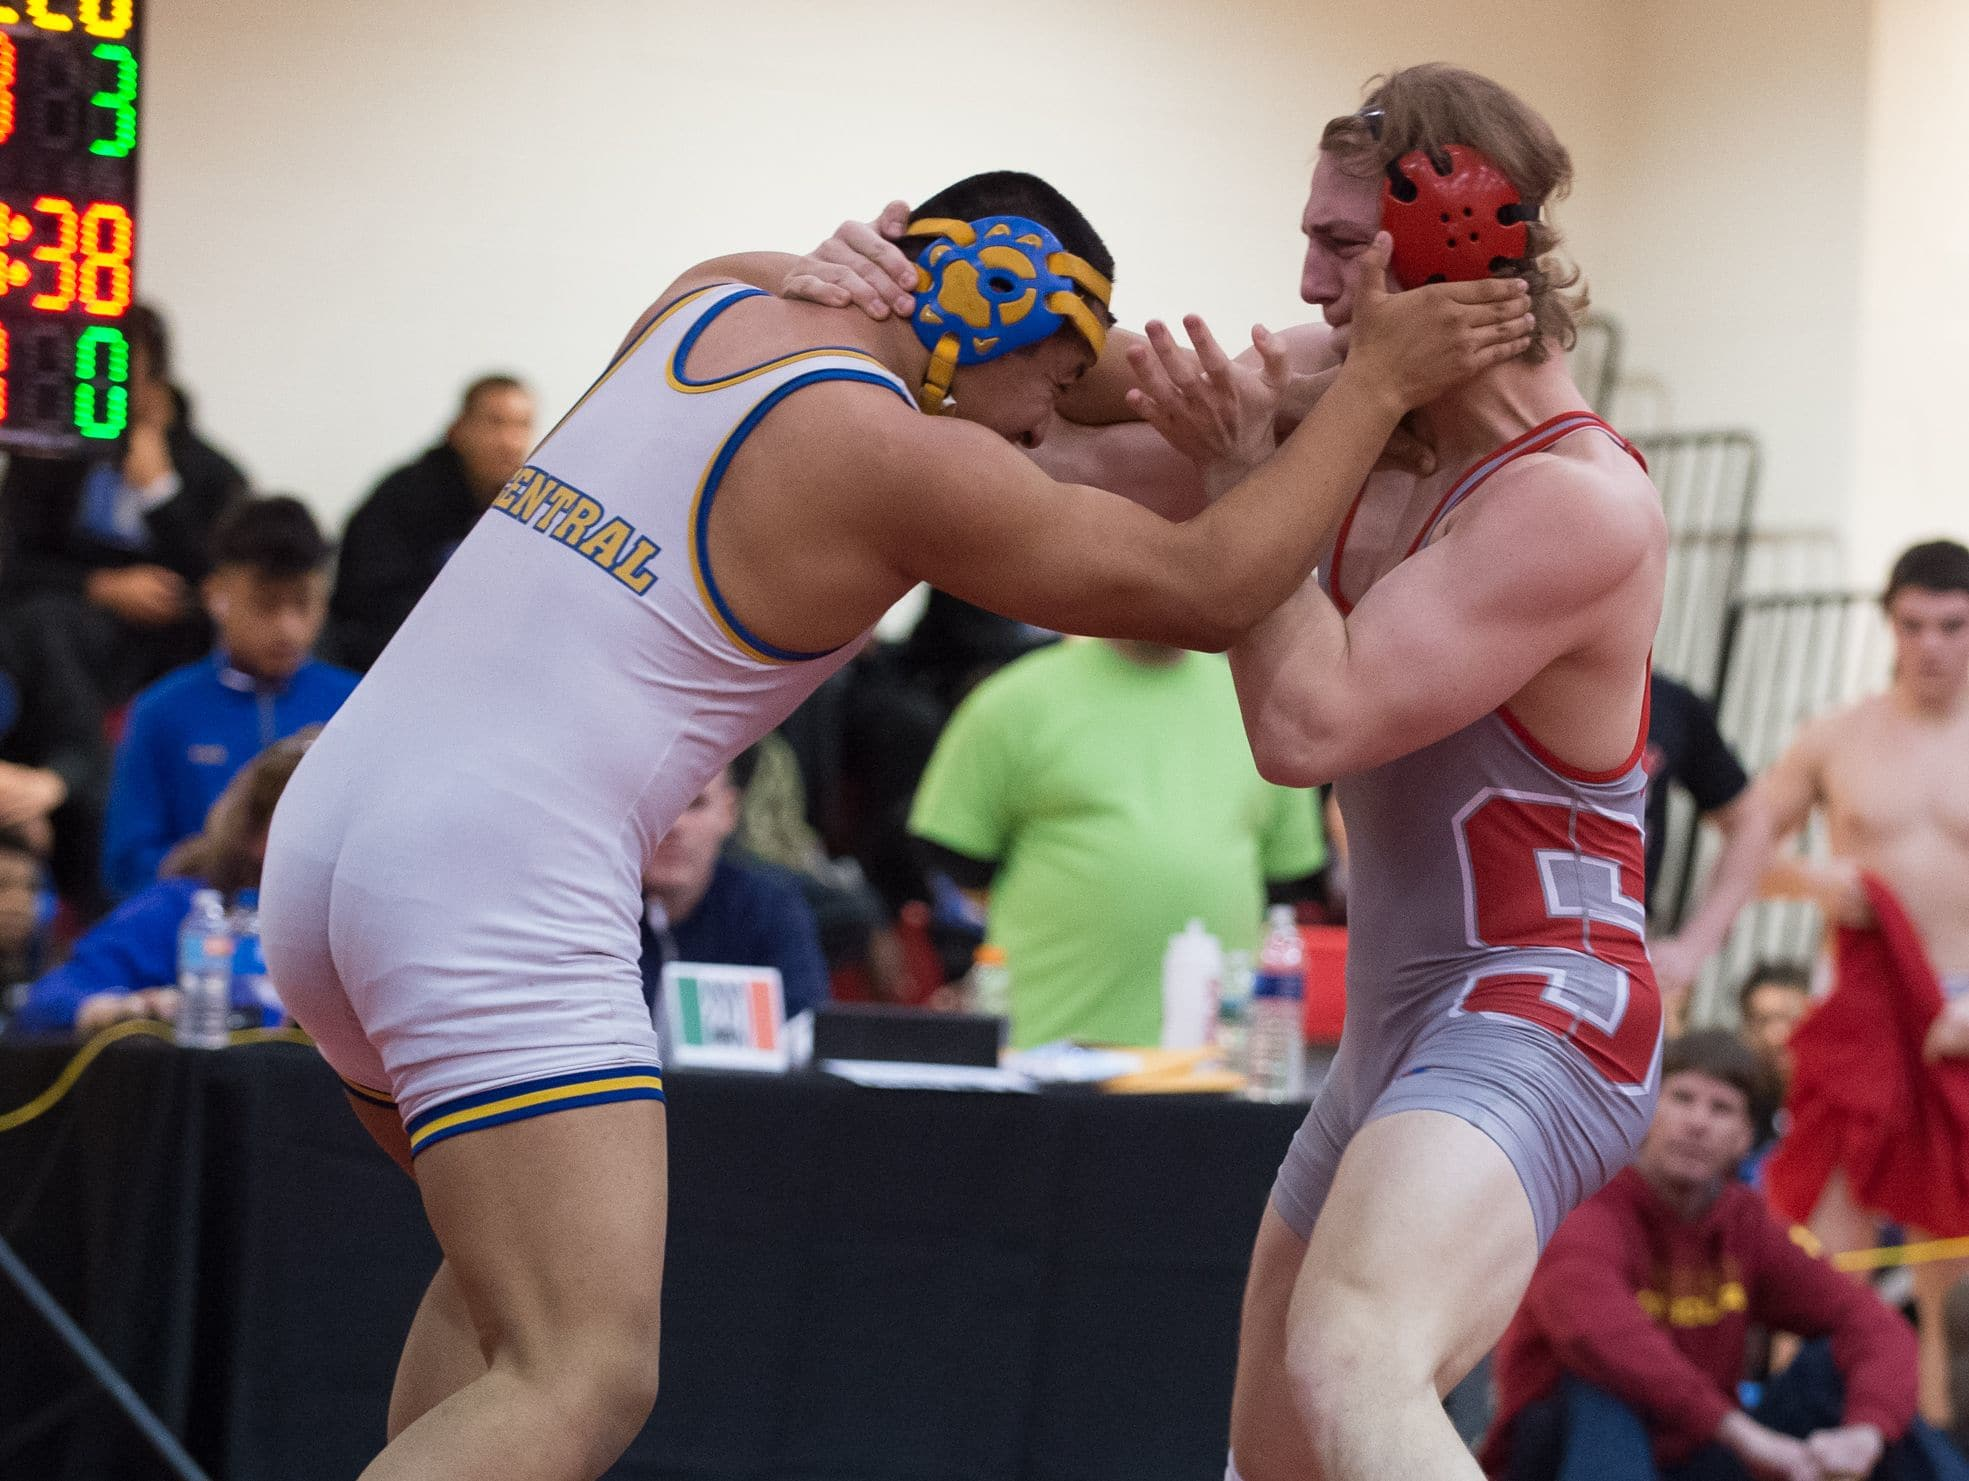 Sussex Central's Mario Santizo, left and Smyrna's Tony Wuest face off in the 220 pound match at DIAA Dual Meet Wrestling State Championship at Smyrna High School.